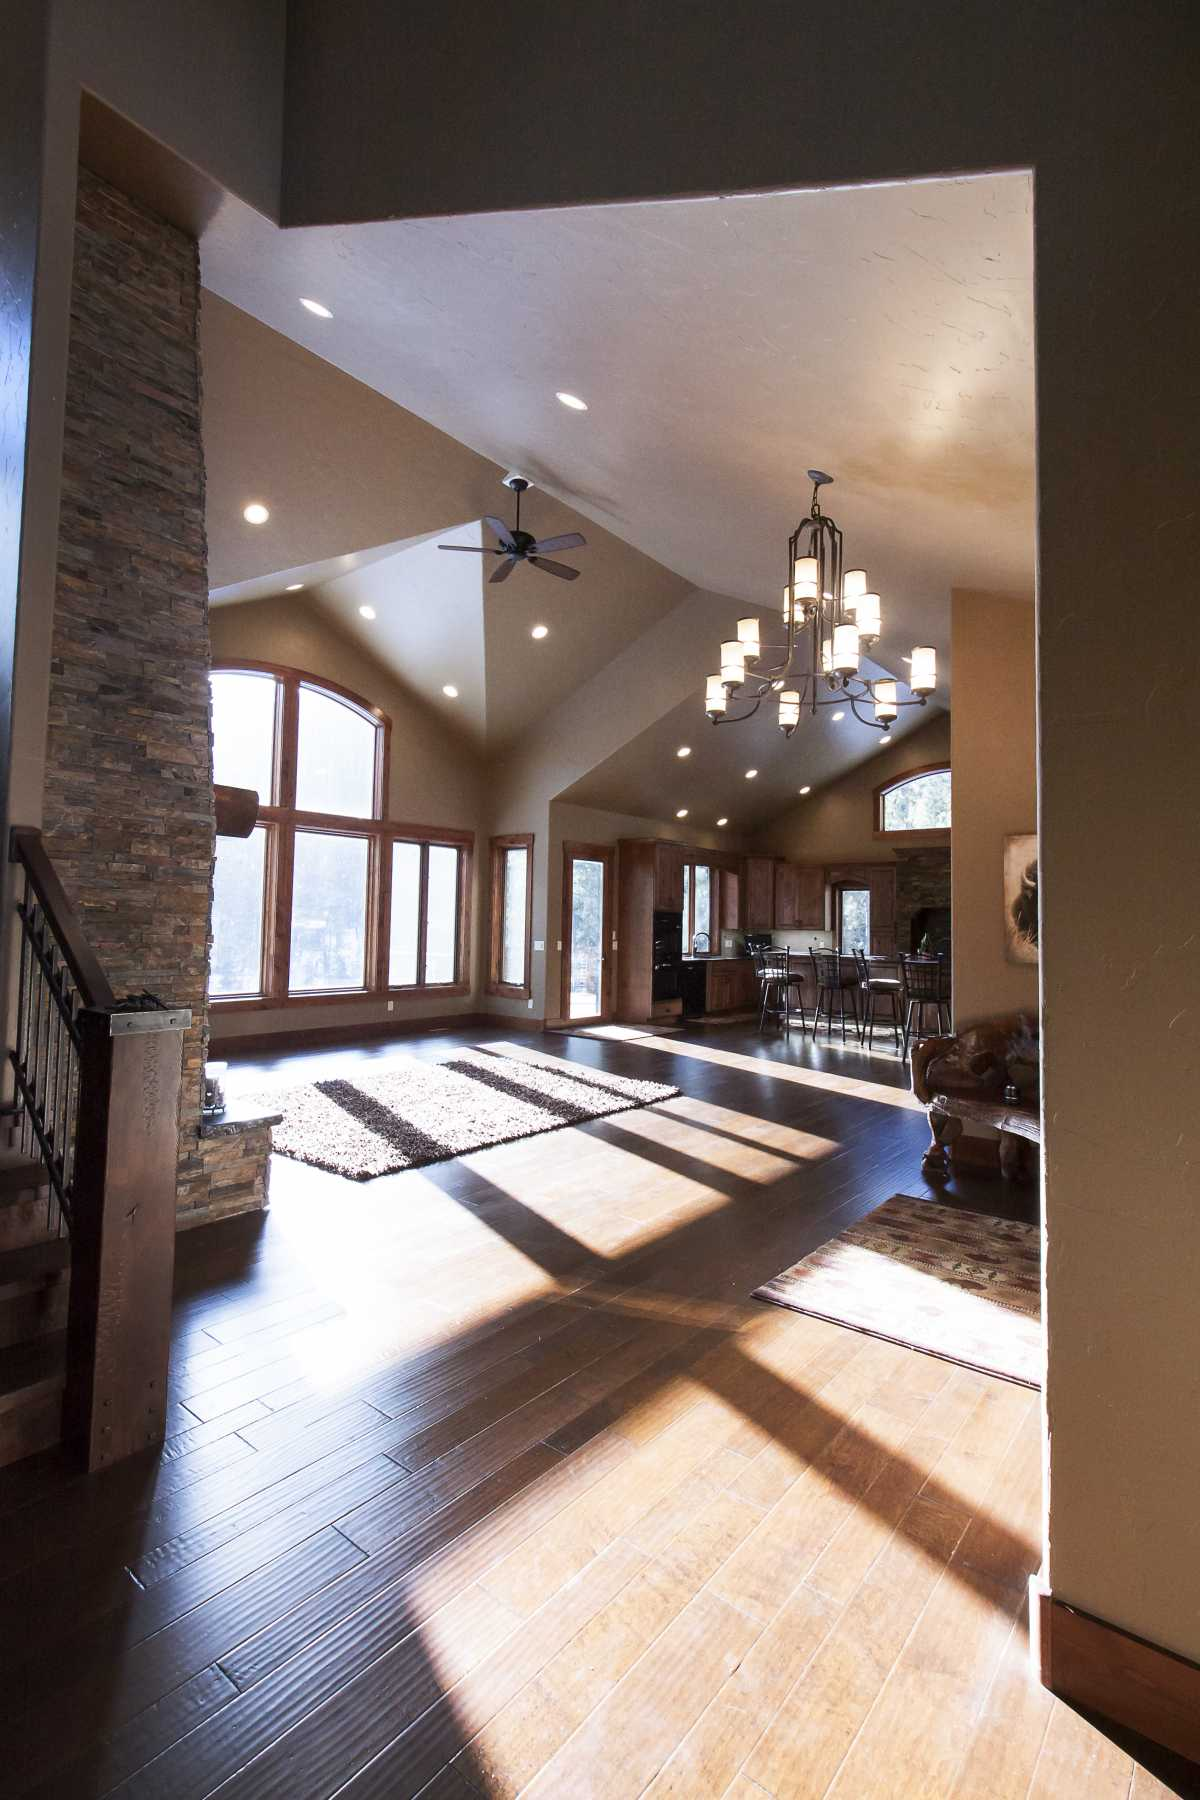 The multi-pitched roof makes for a gorgeous living room ceiling!